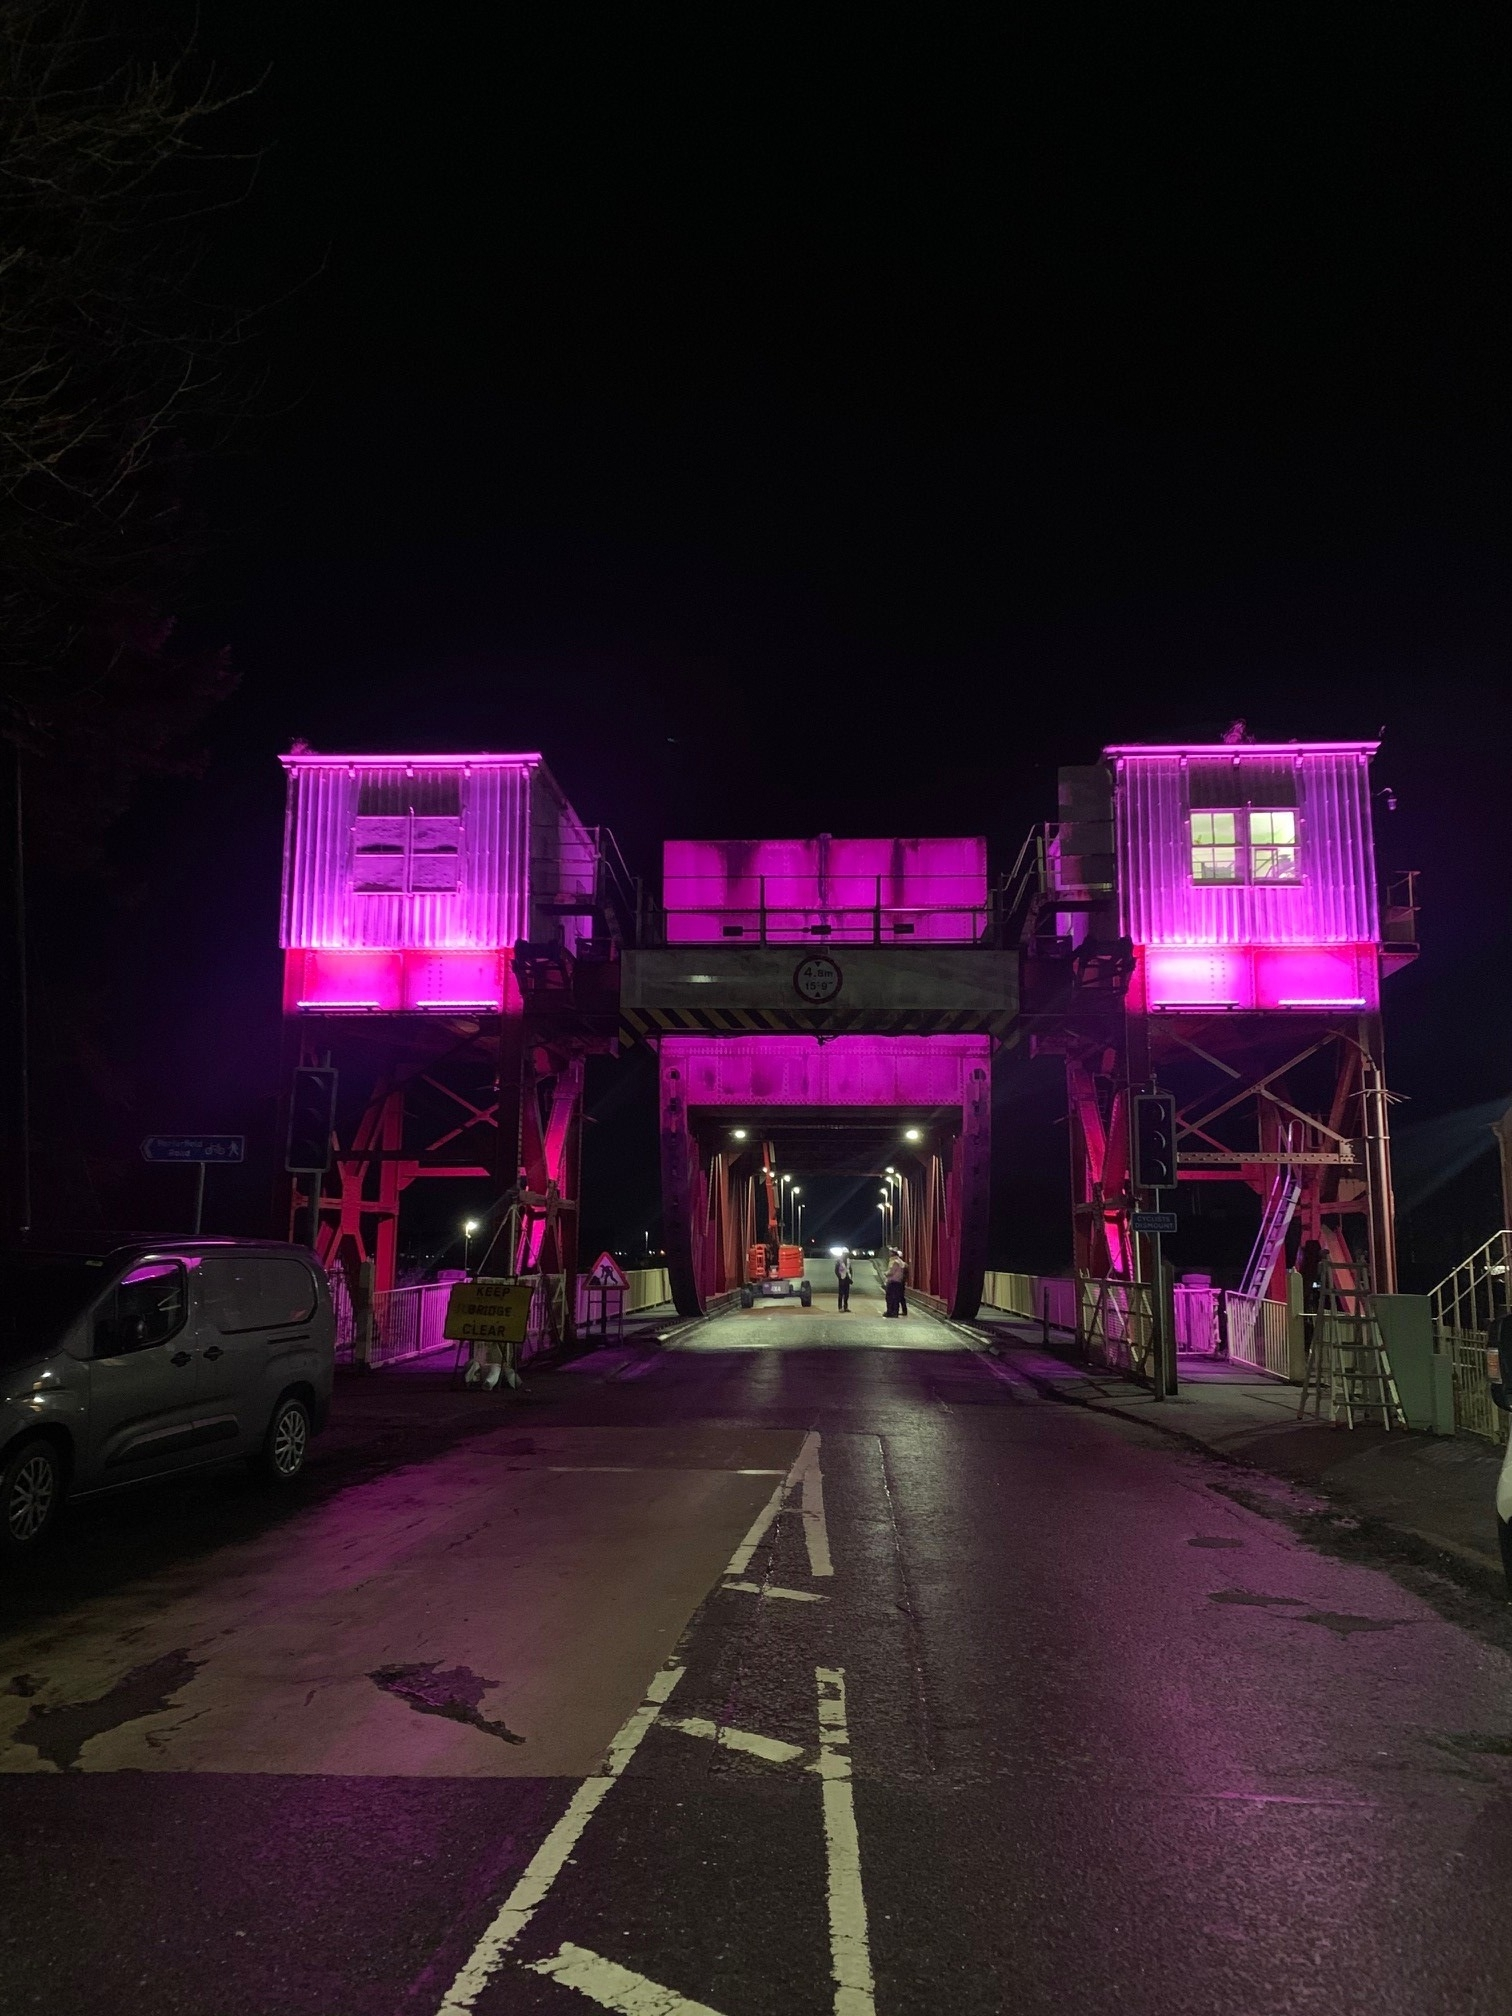 Bascule Bridge - Purple